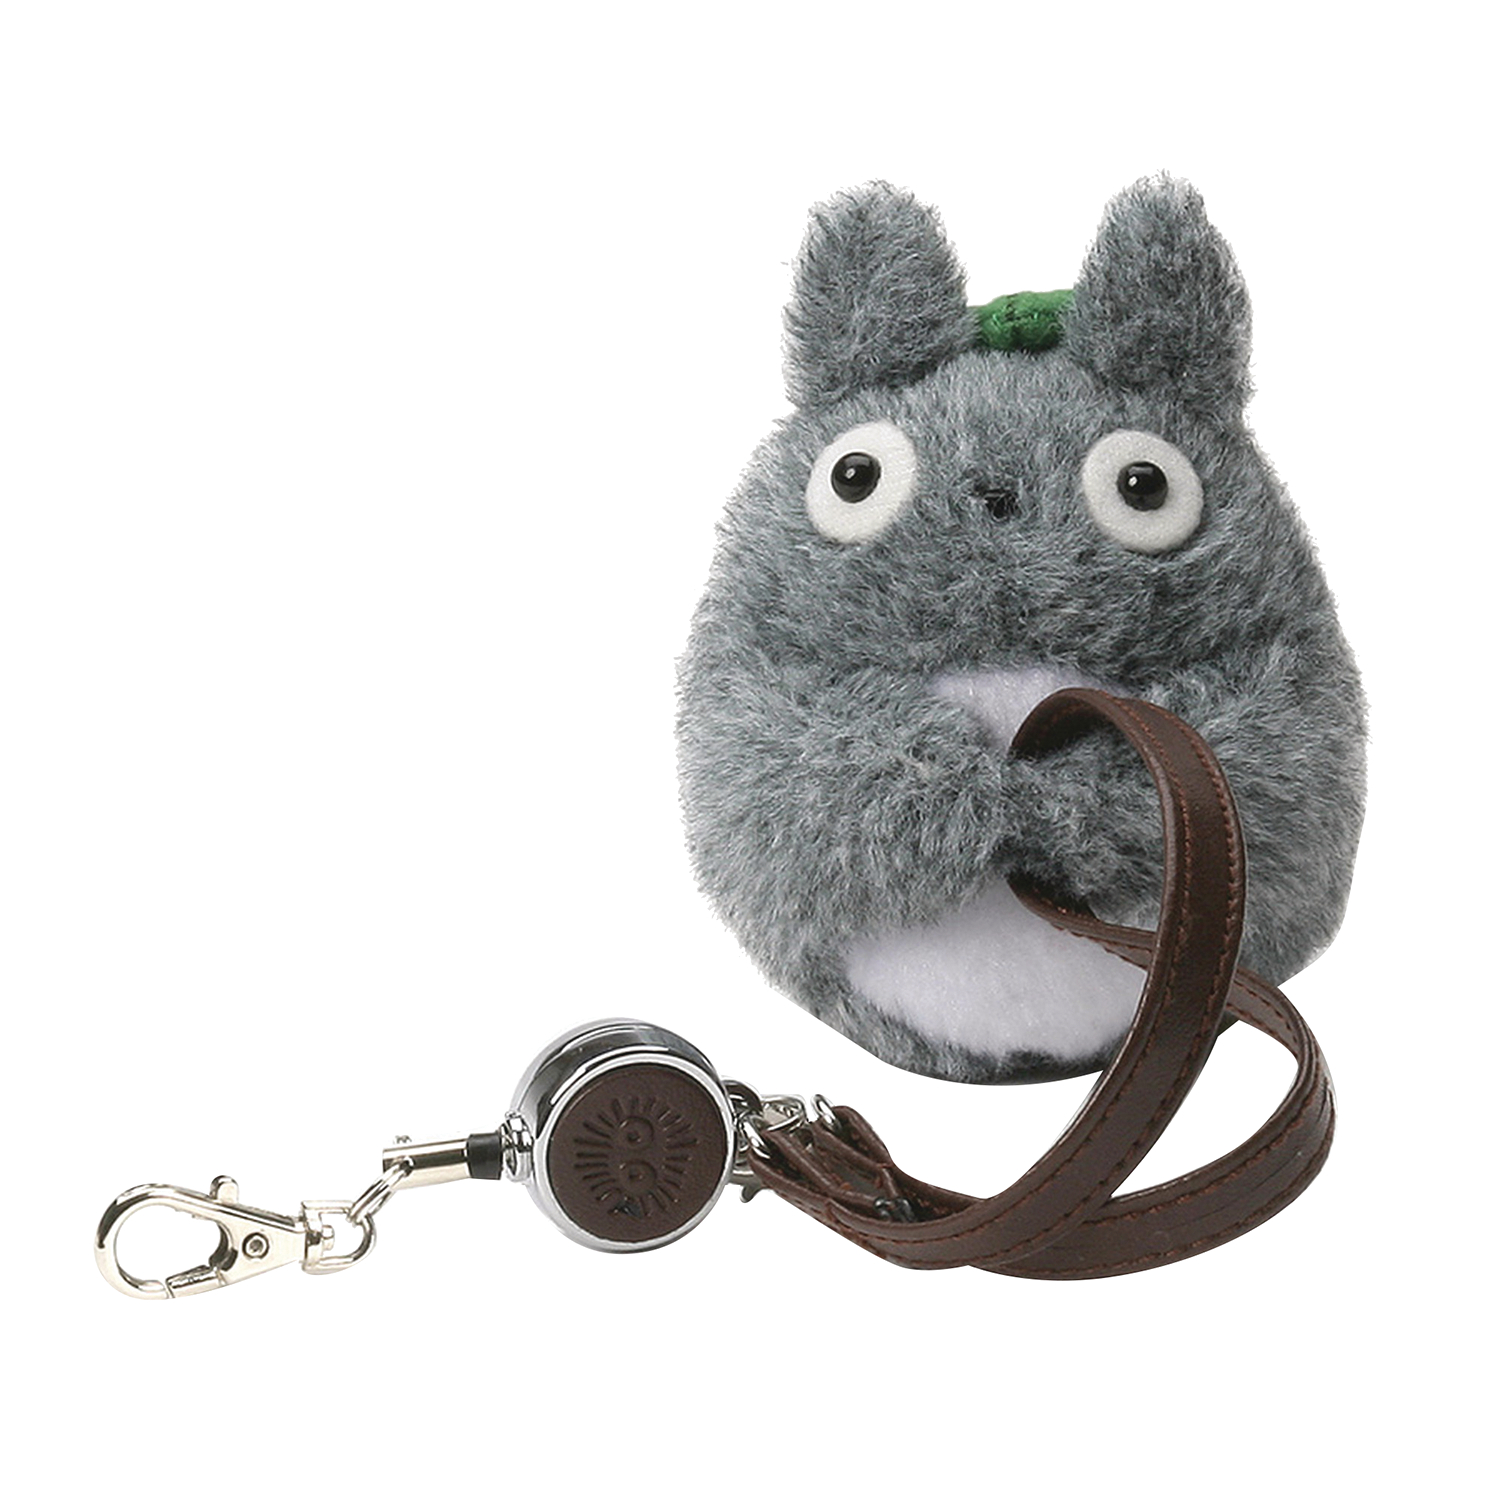 TOTORO KEY HOLDER 3IN PLUSH